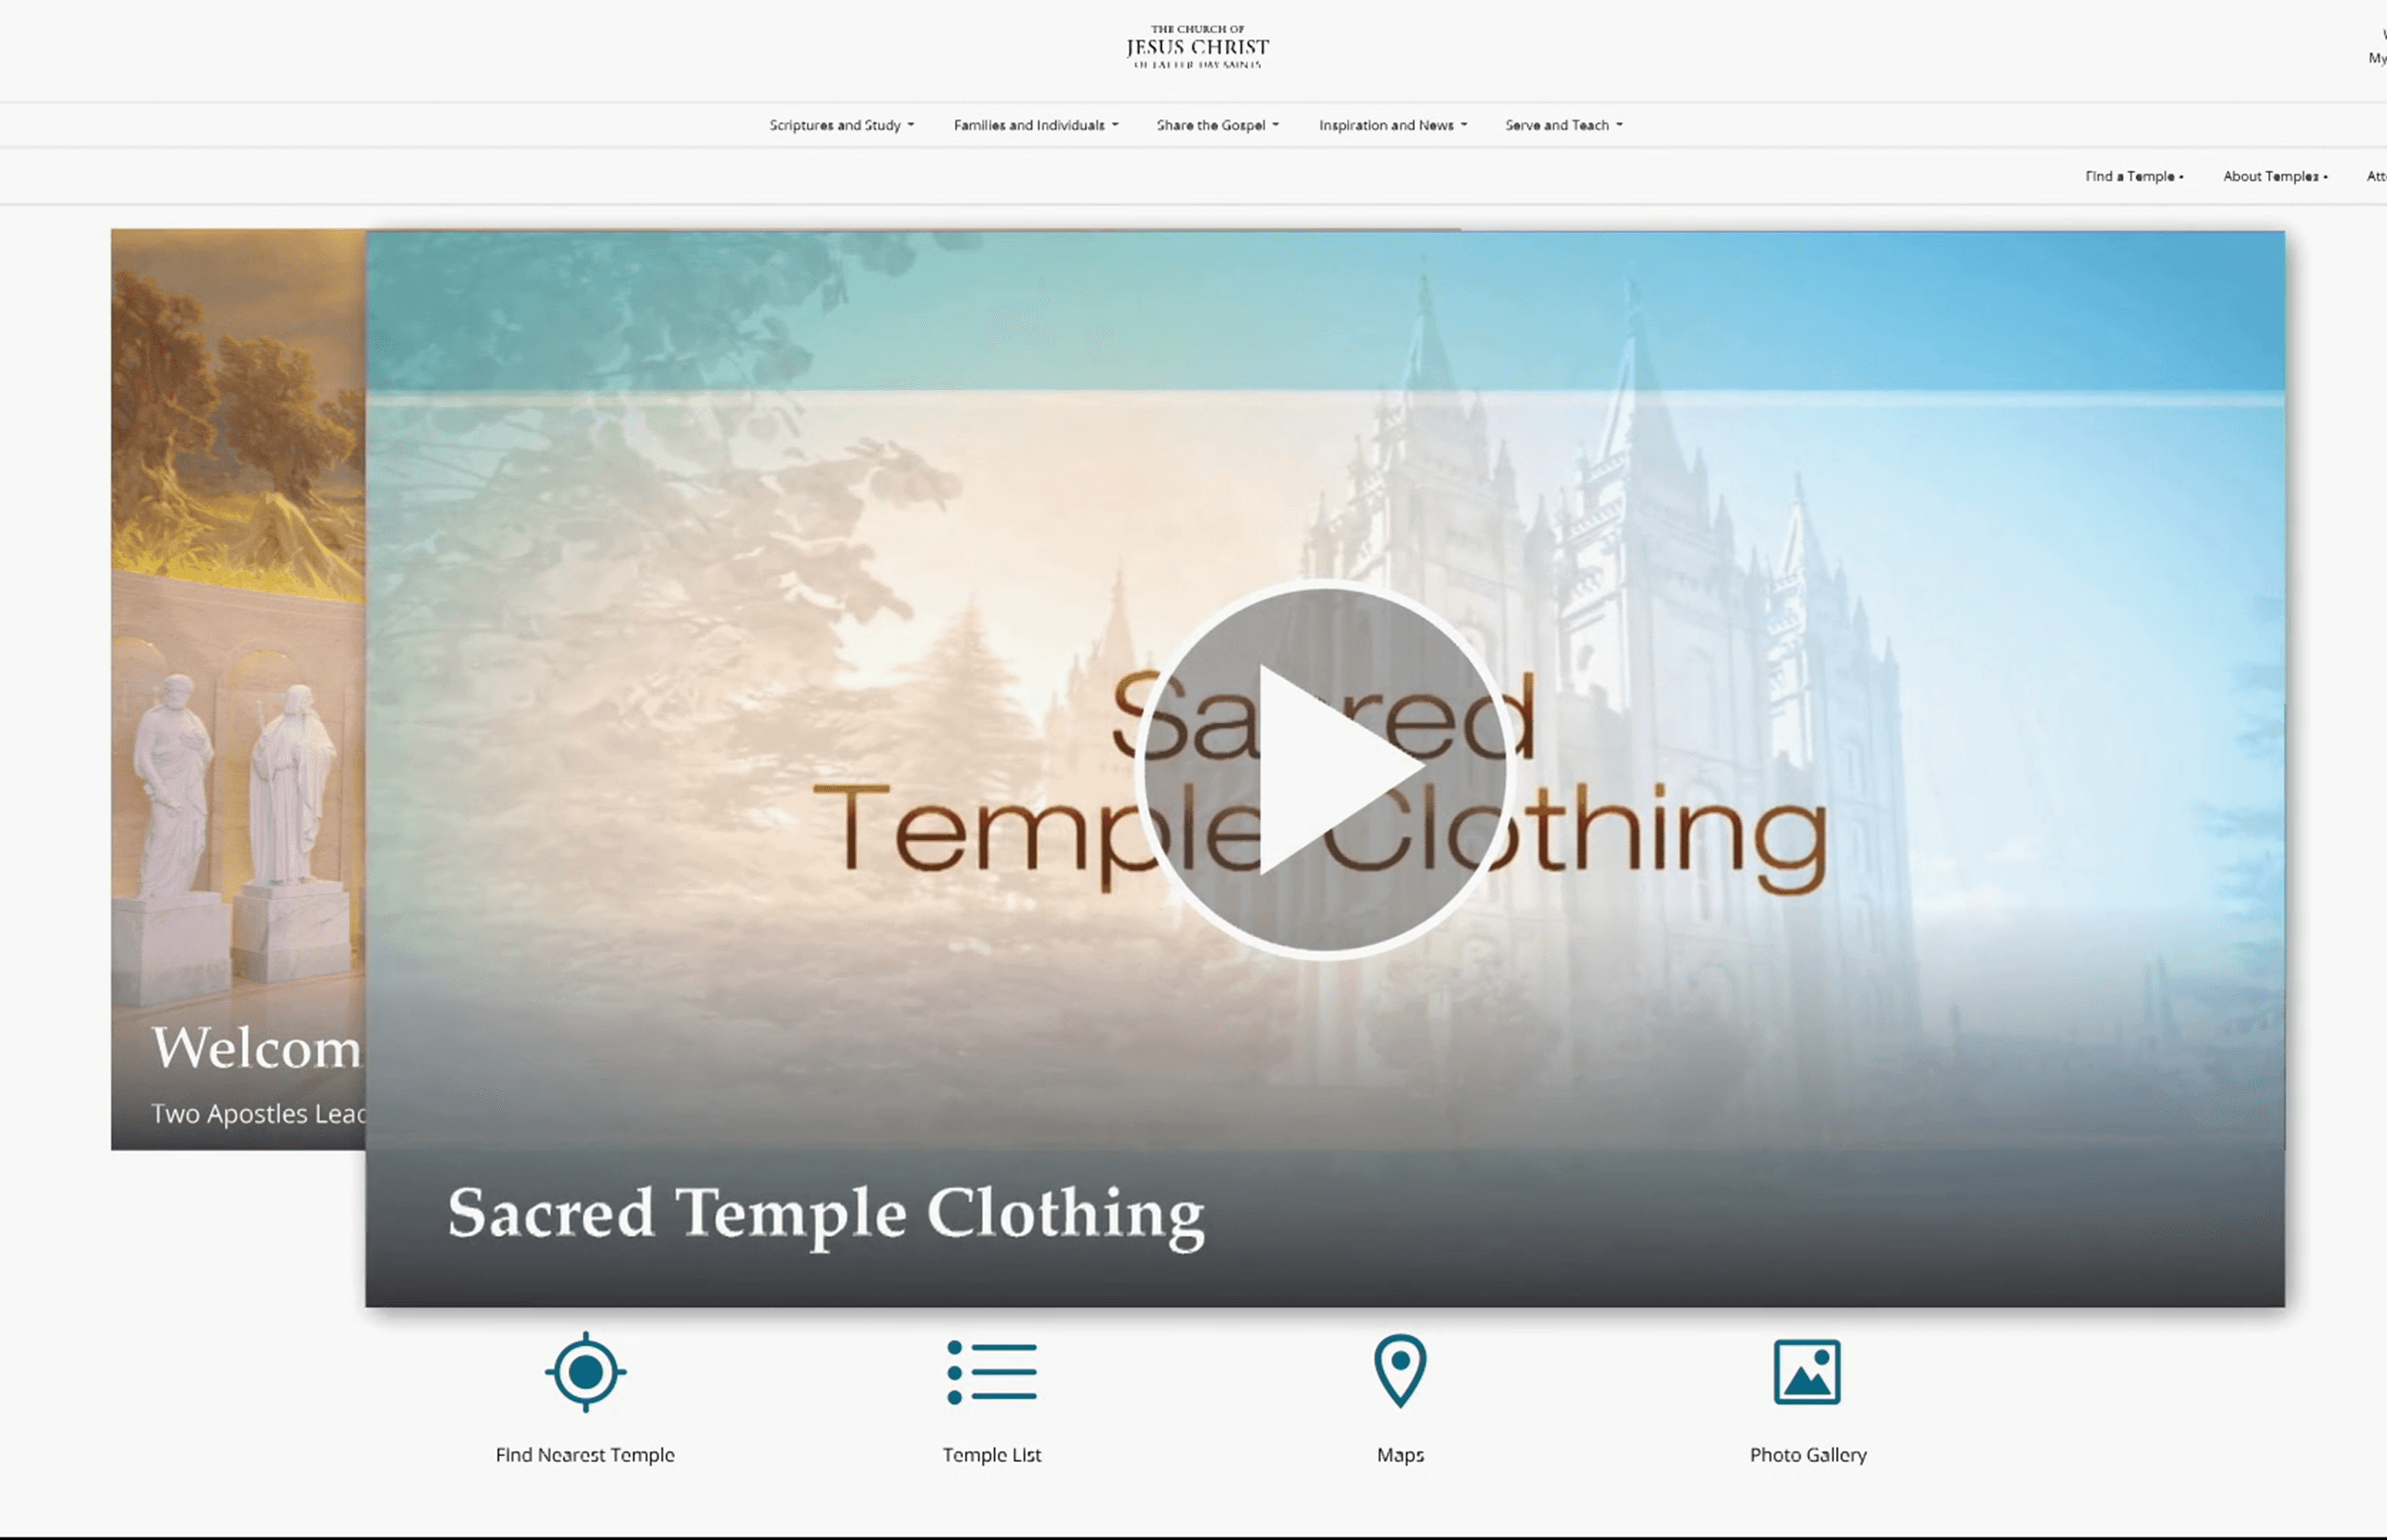 Sacred Temple Clothing video